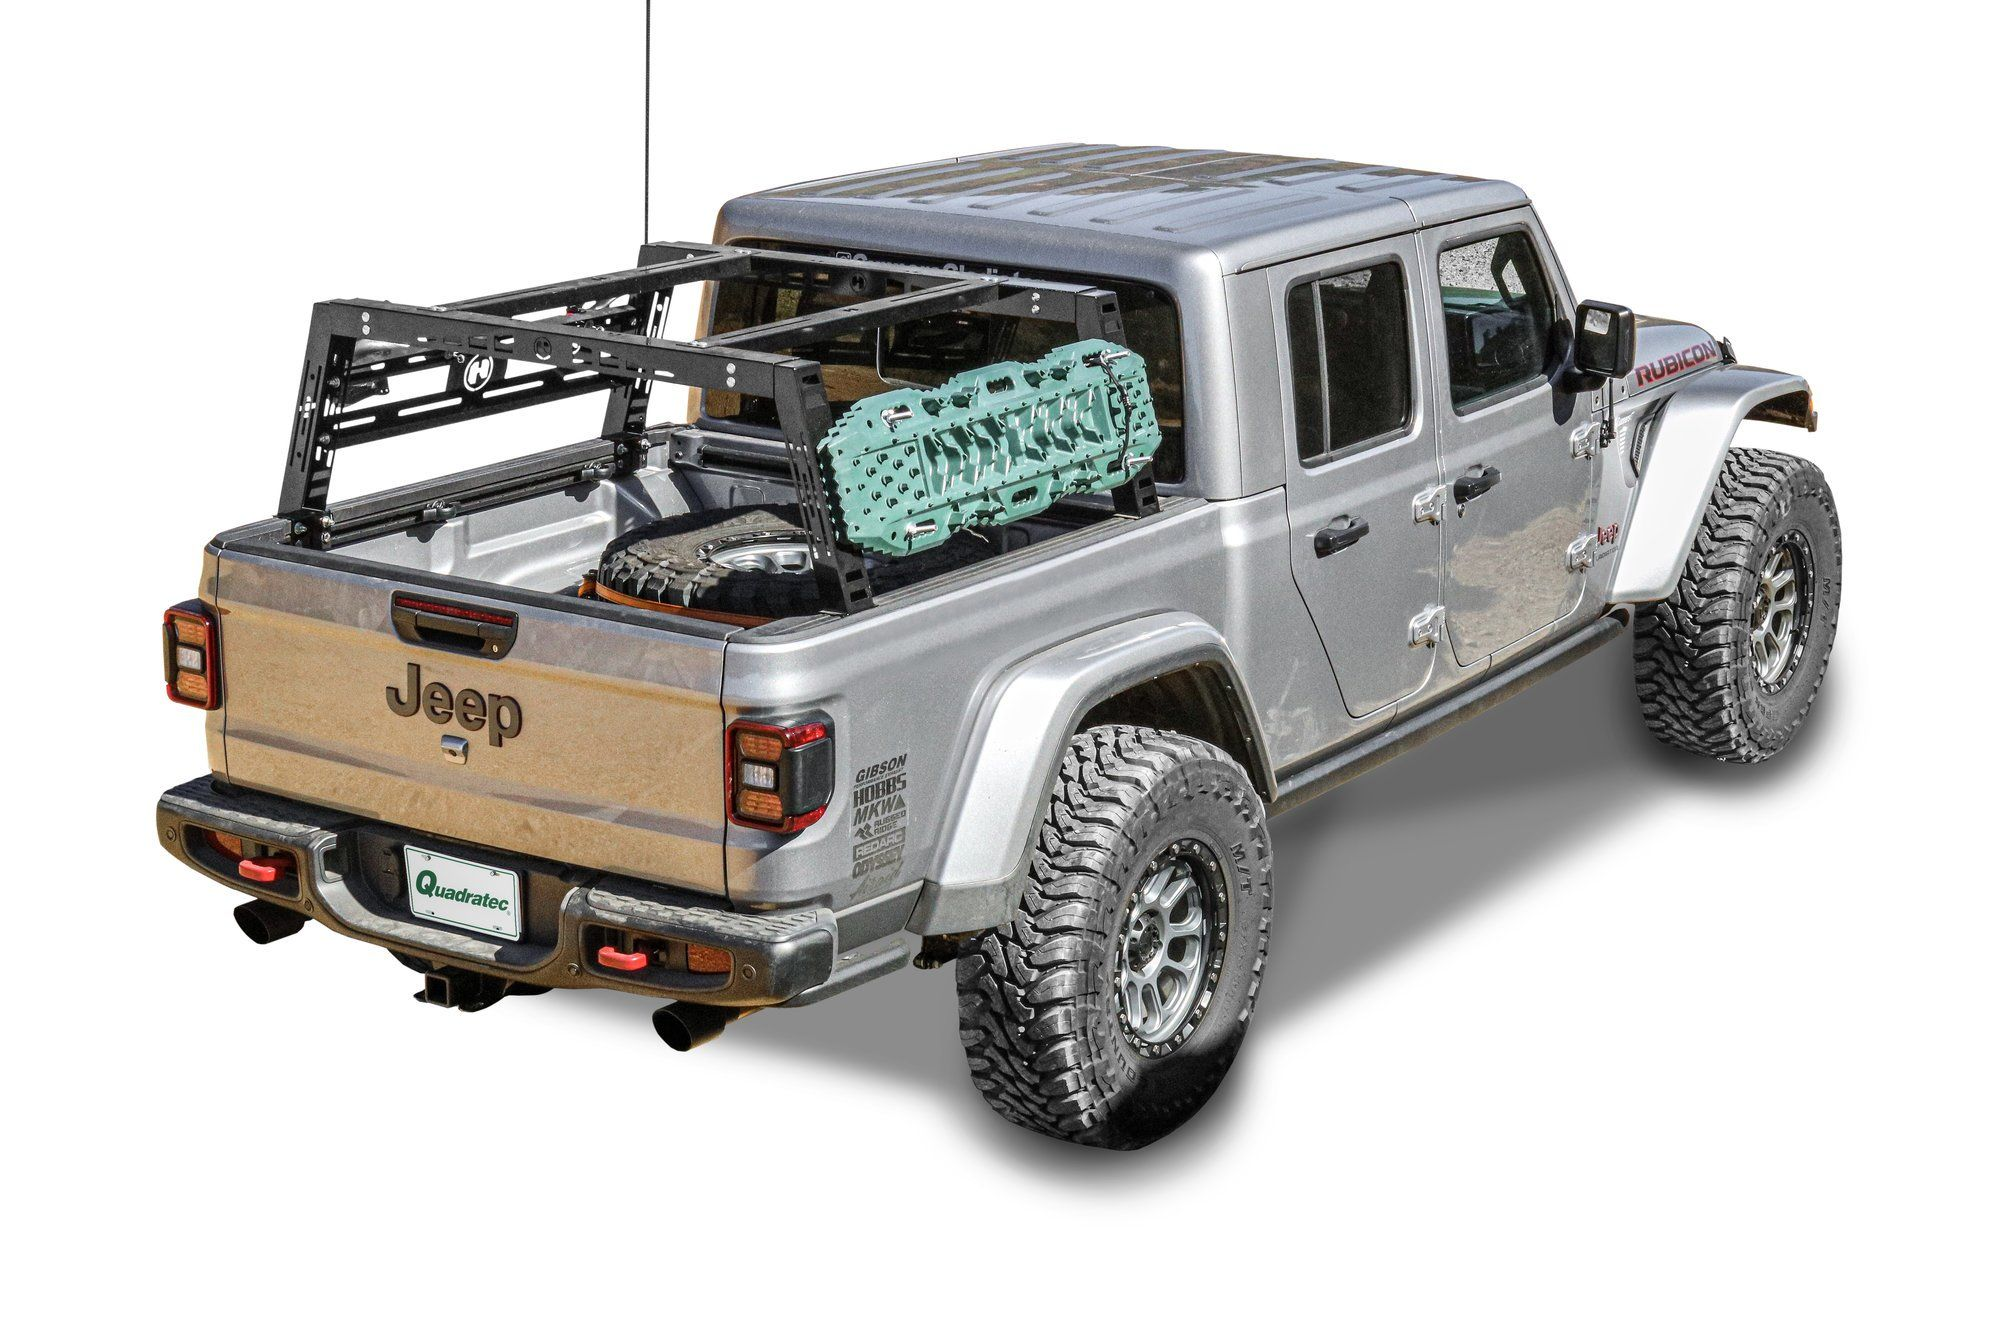 Hobbs 6700 020 Freedom Bed Rack For 20 21 Jeep Gladiator Jt Jeep Gladiator Jeep Gladiator